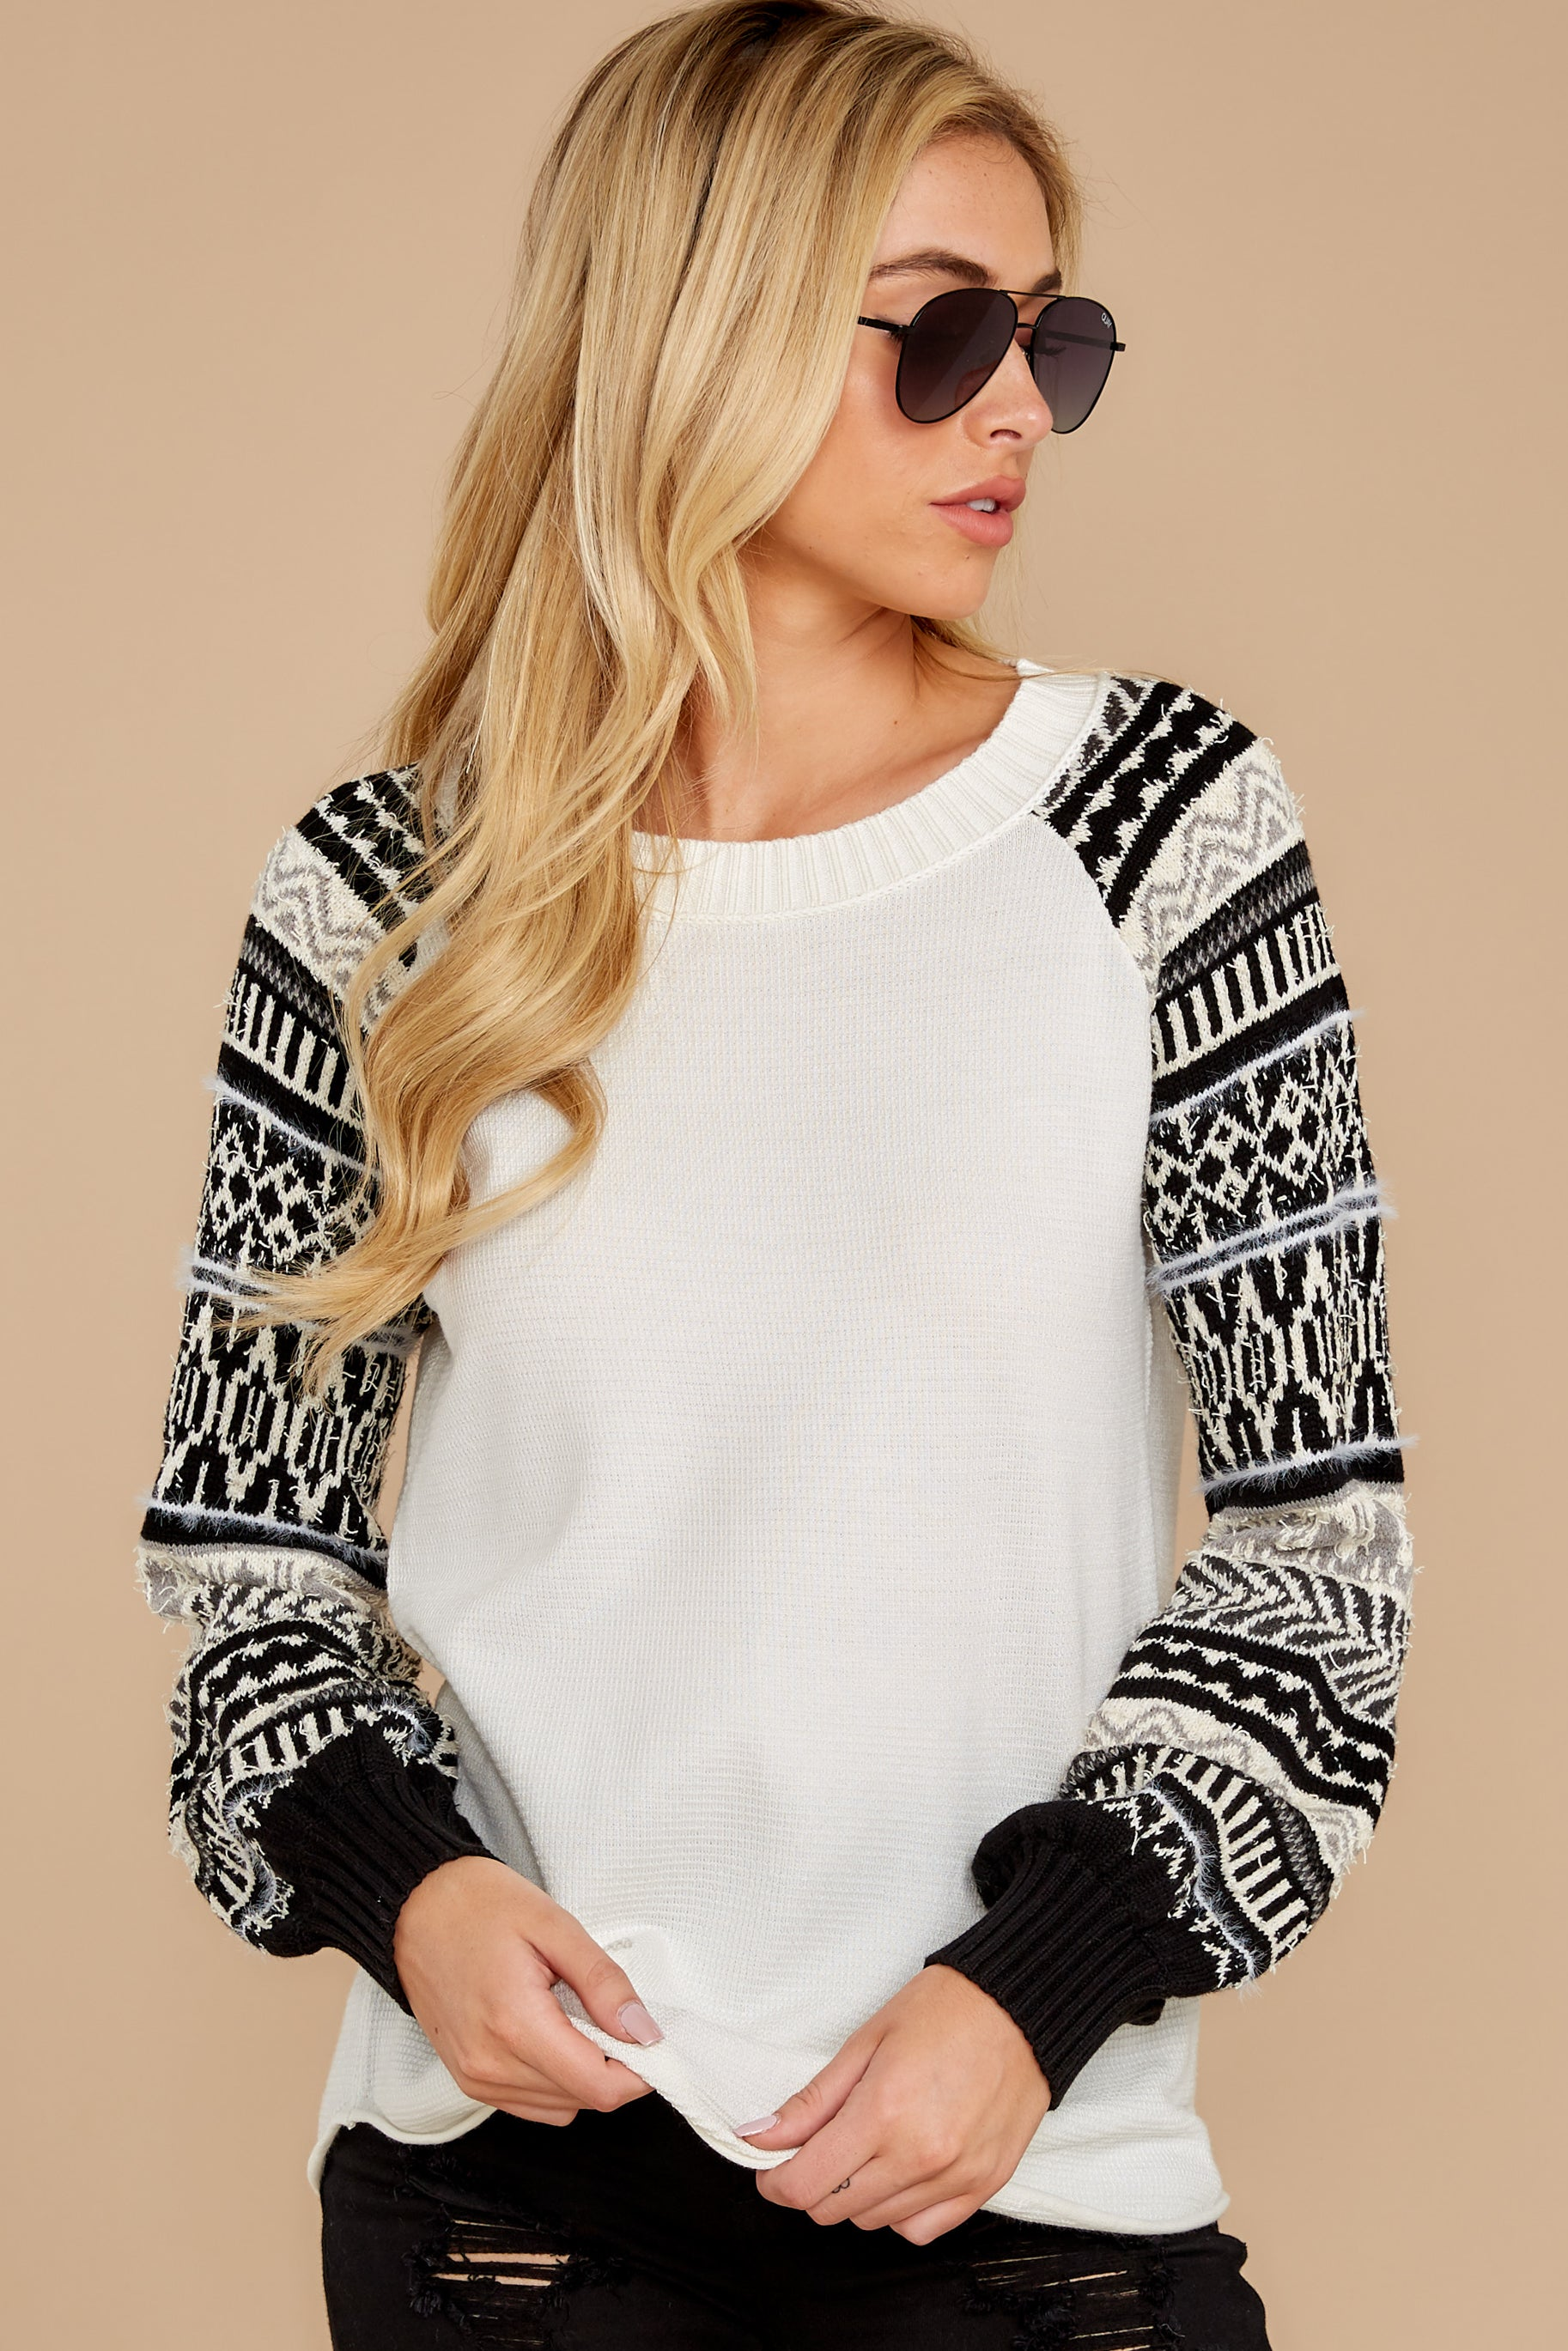 8 Never Settle Black And White Sweater at reddress.com